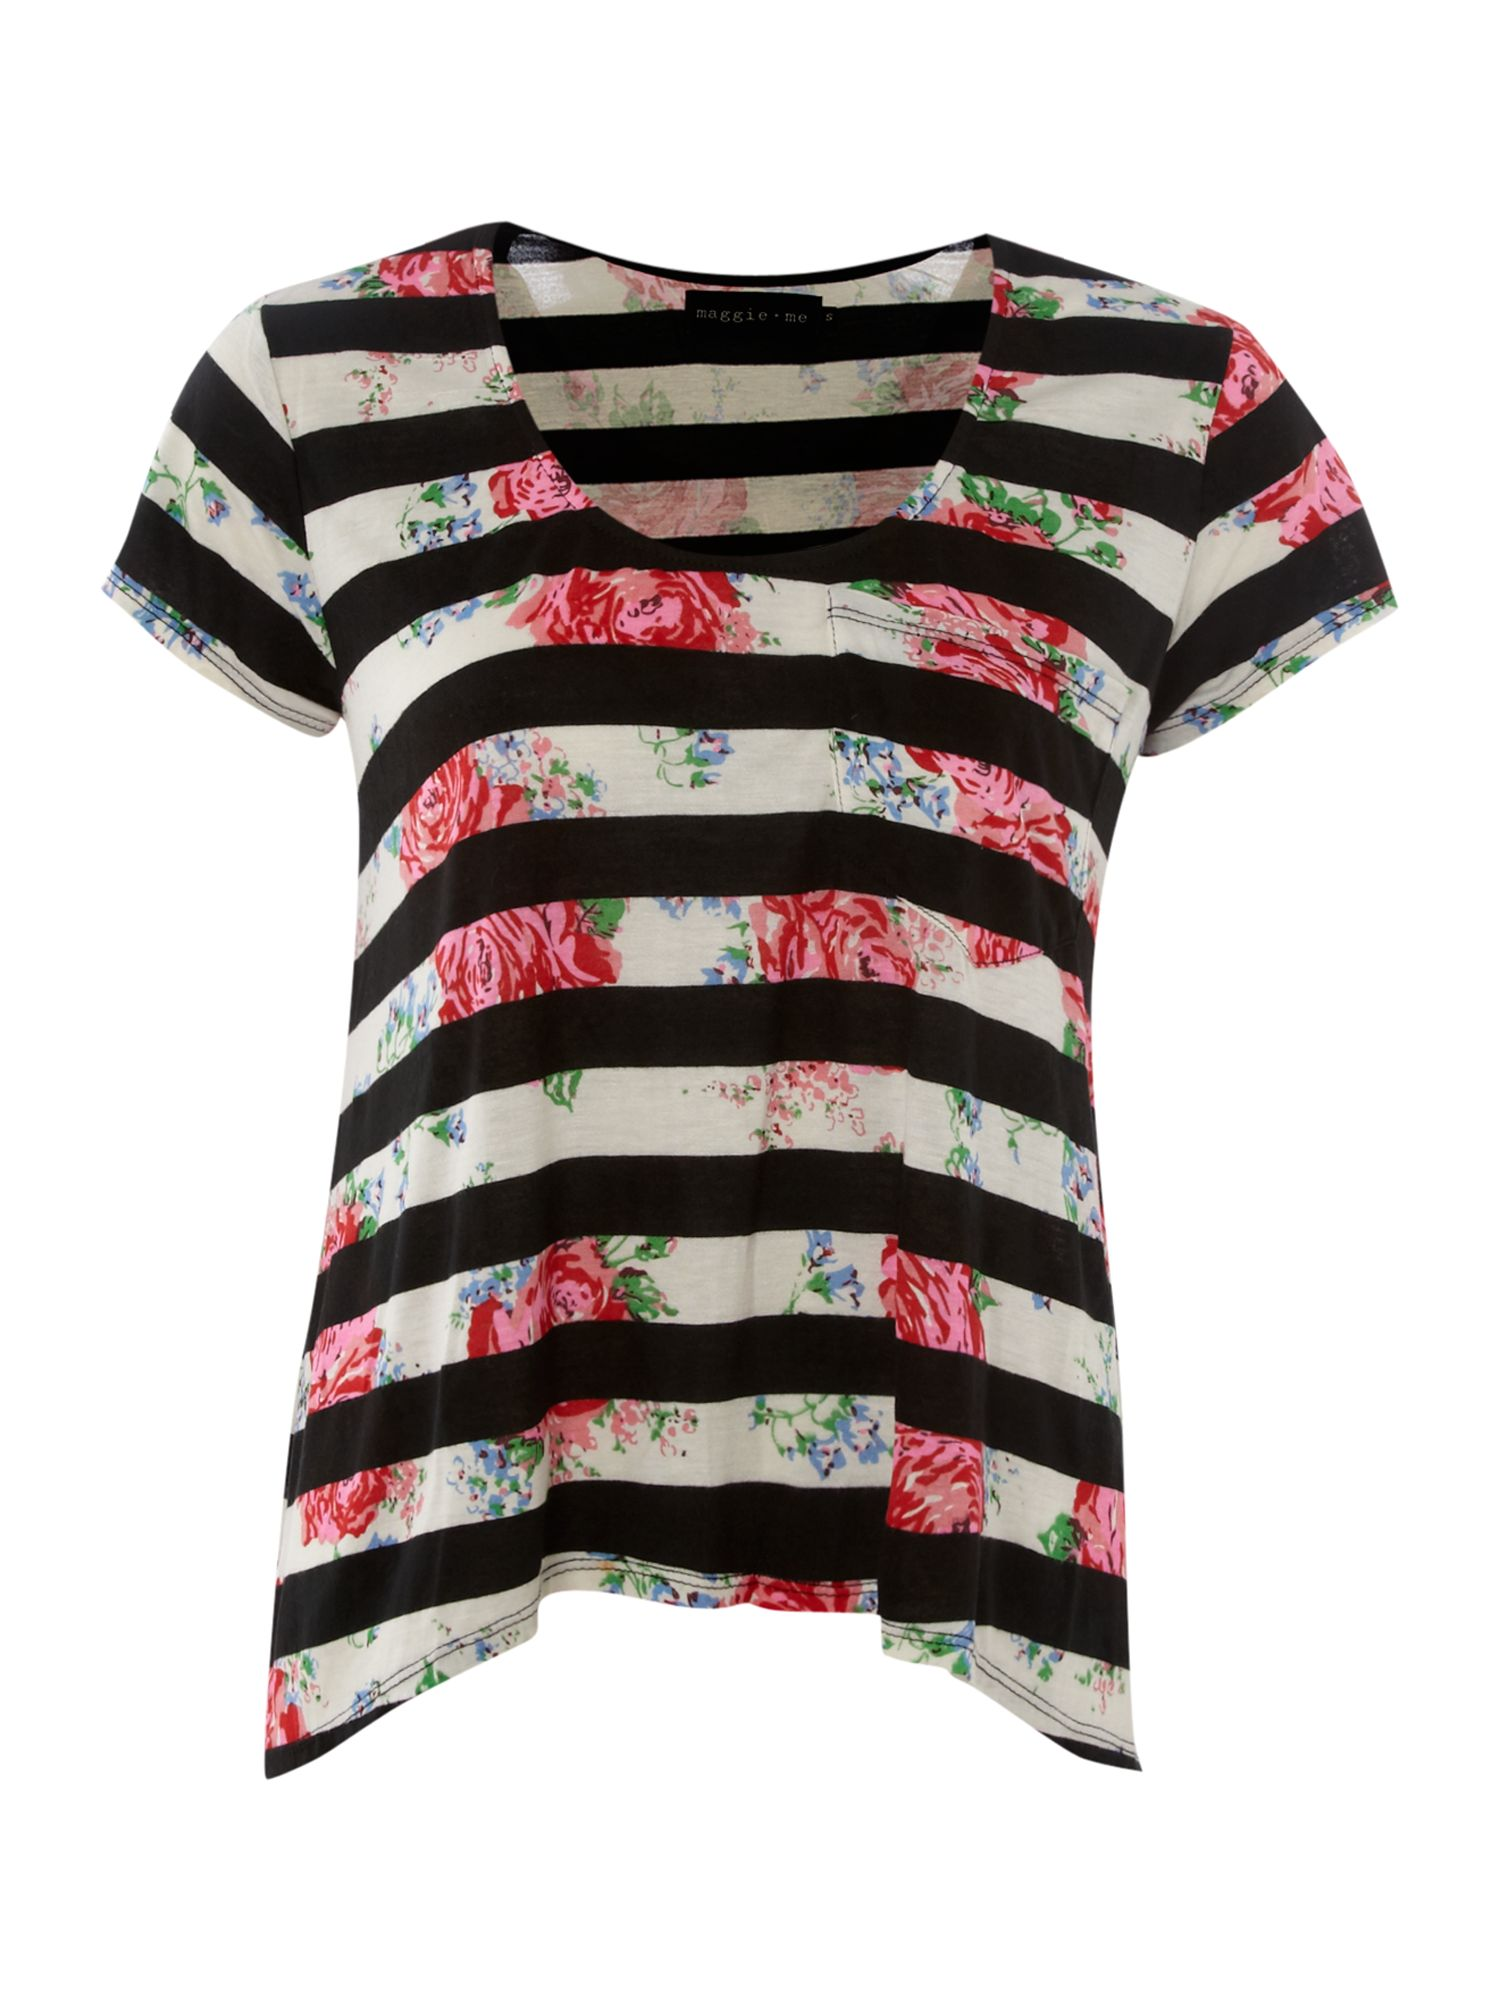 Maggie and Me Womens Maggie and Me Stripe t-shirt, Black product image